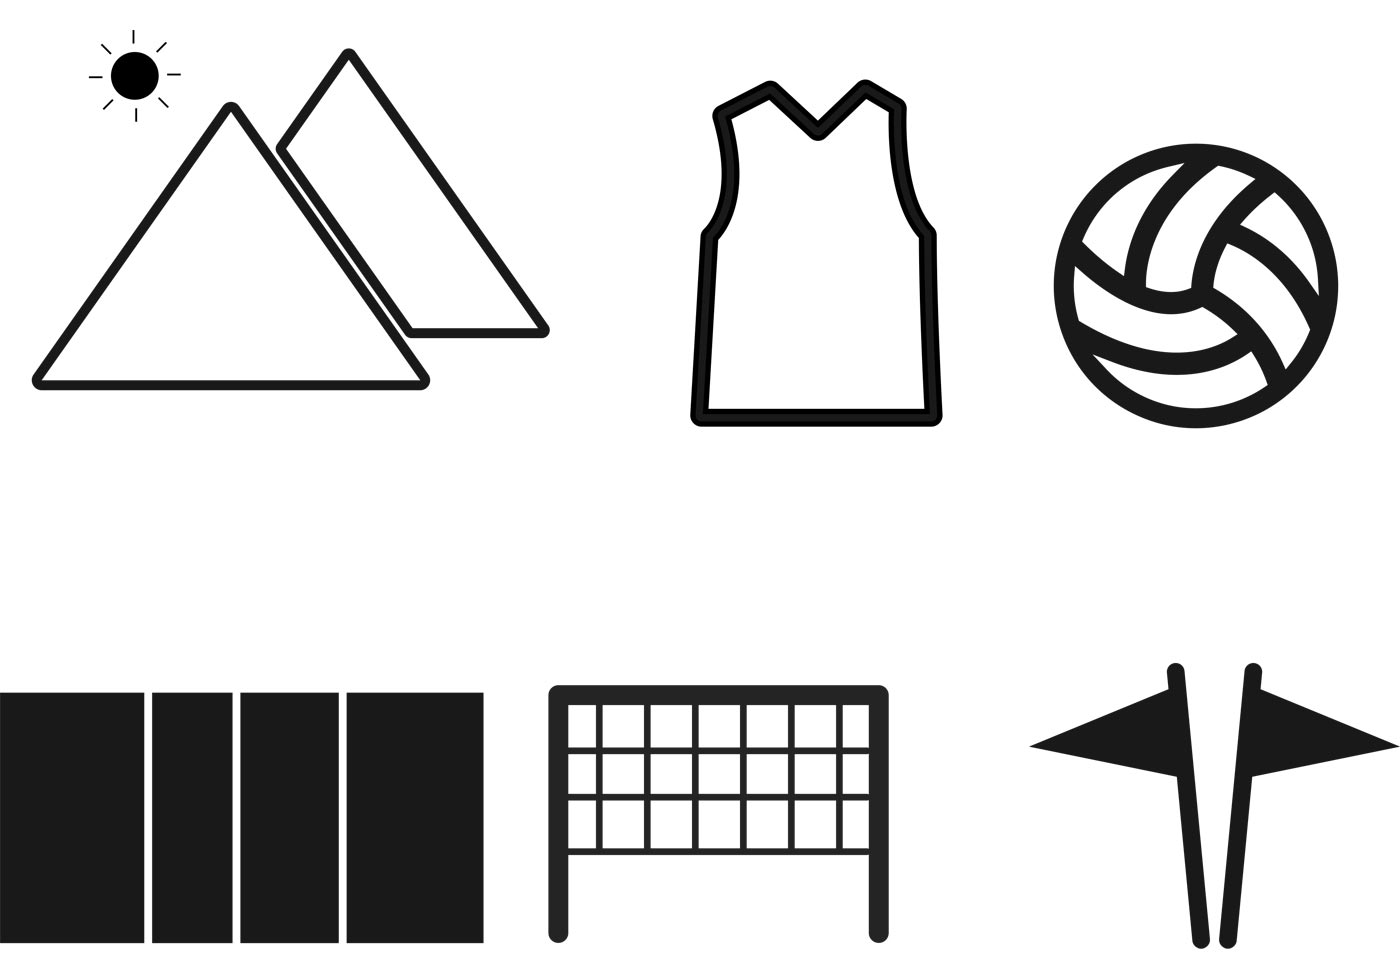 Volleyball Icons Vectors - Download Free Vector Art, Stock ...